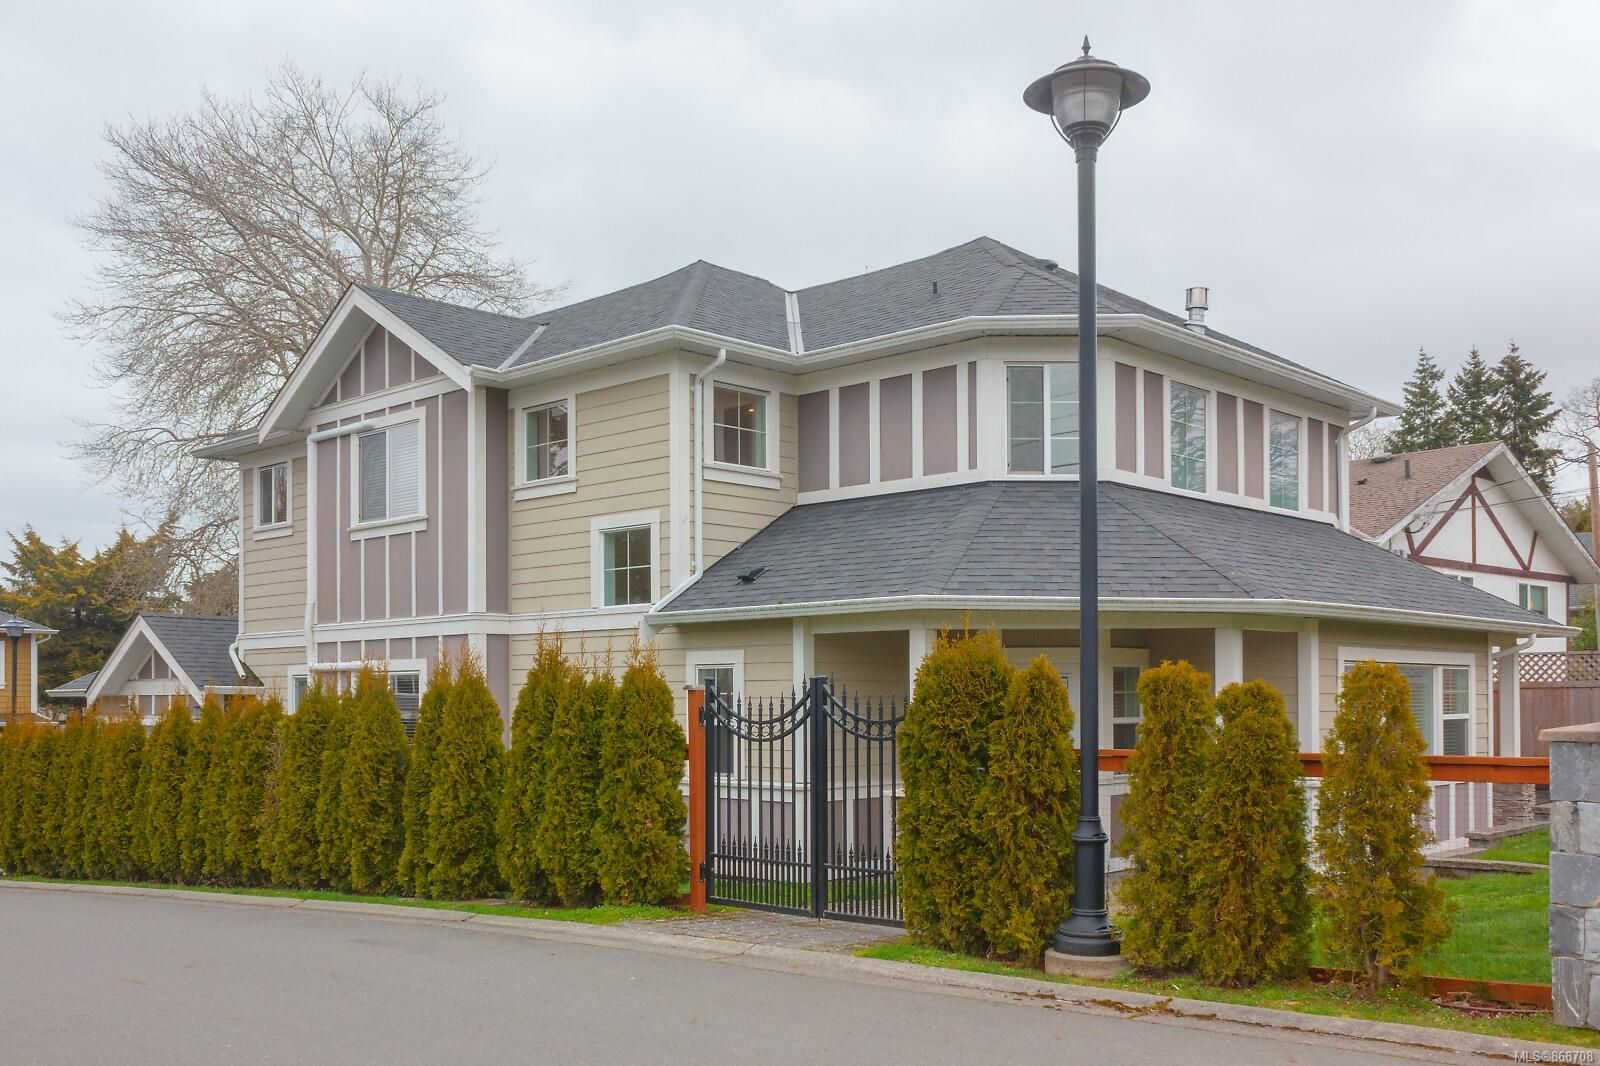 Main Photo: 3907 Twin Pine Lane in : SE Maplewood House for sale (Saanich East)  : MLS®# 868708